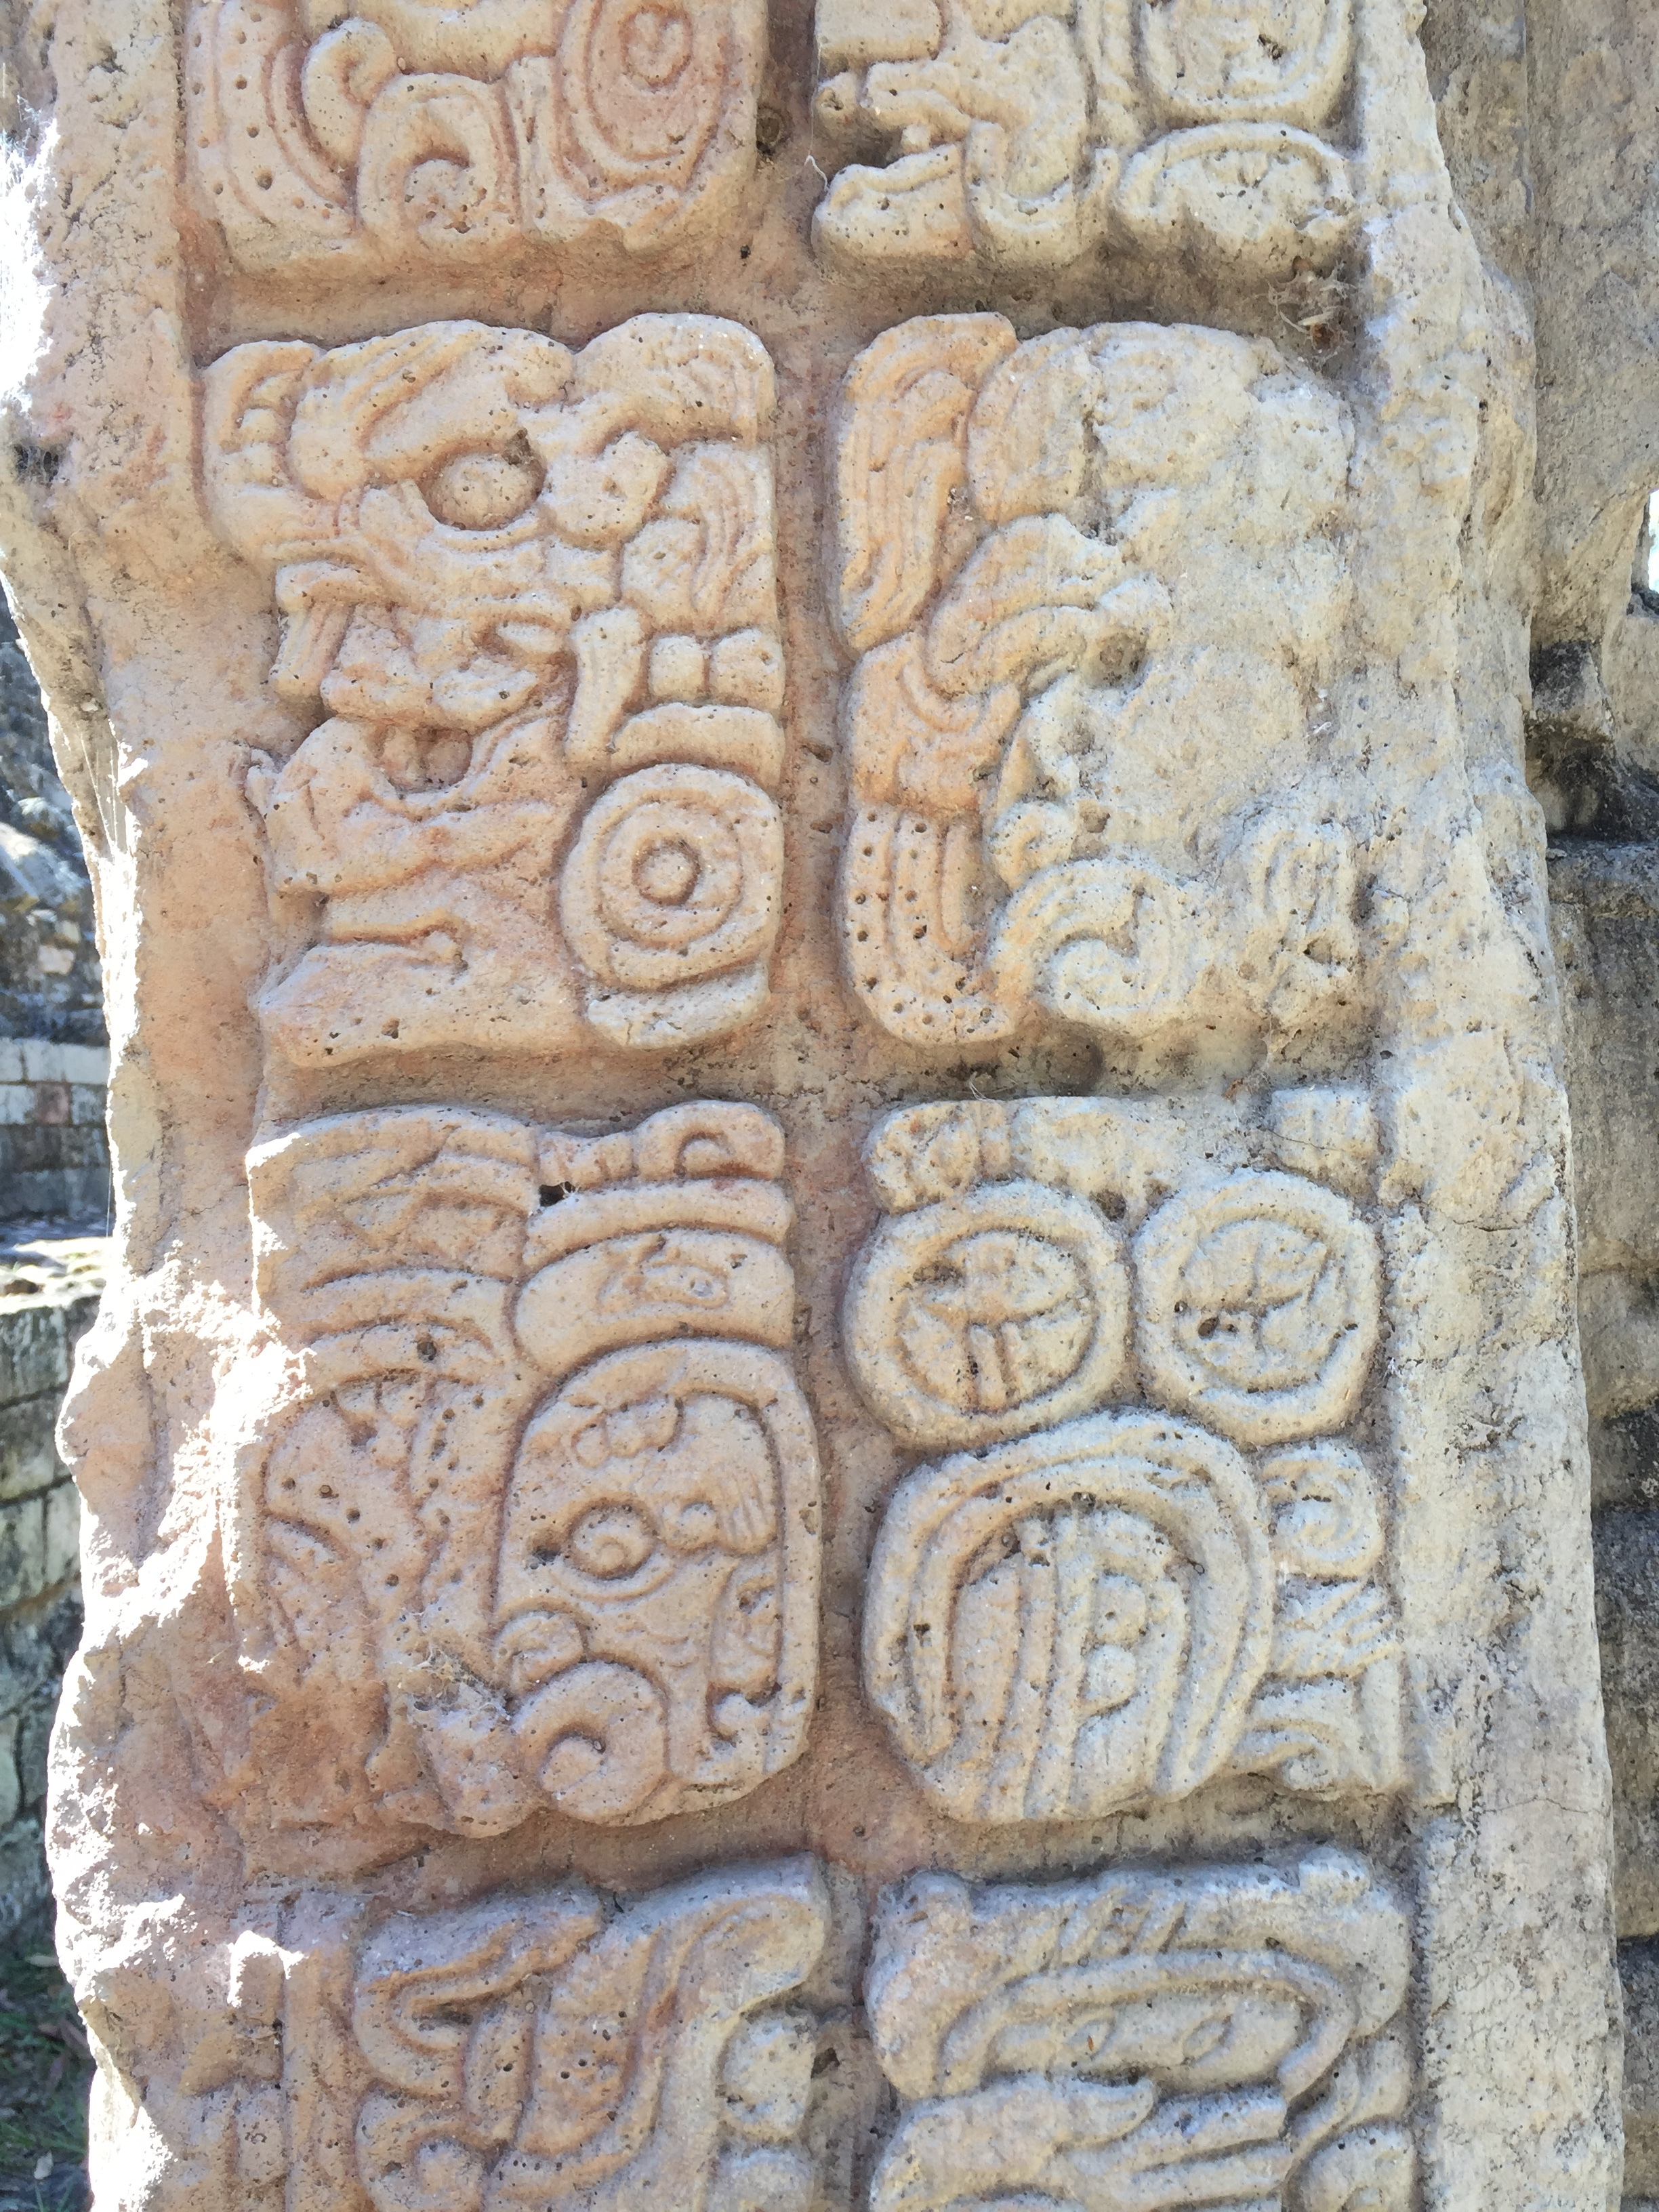 Beautiful heiroglyphics carved on stone tablet, Copán, Honduras.